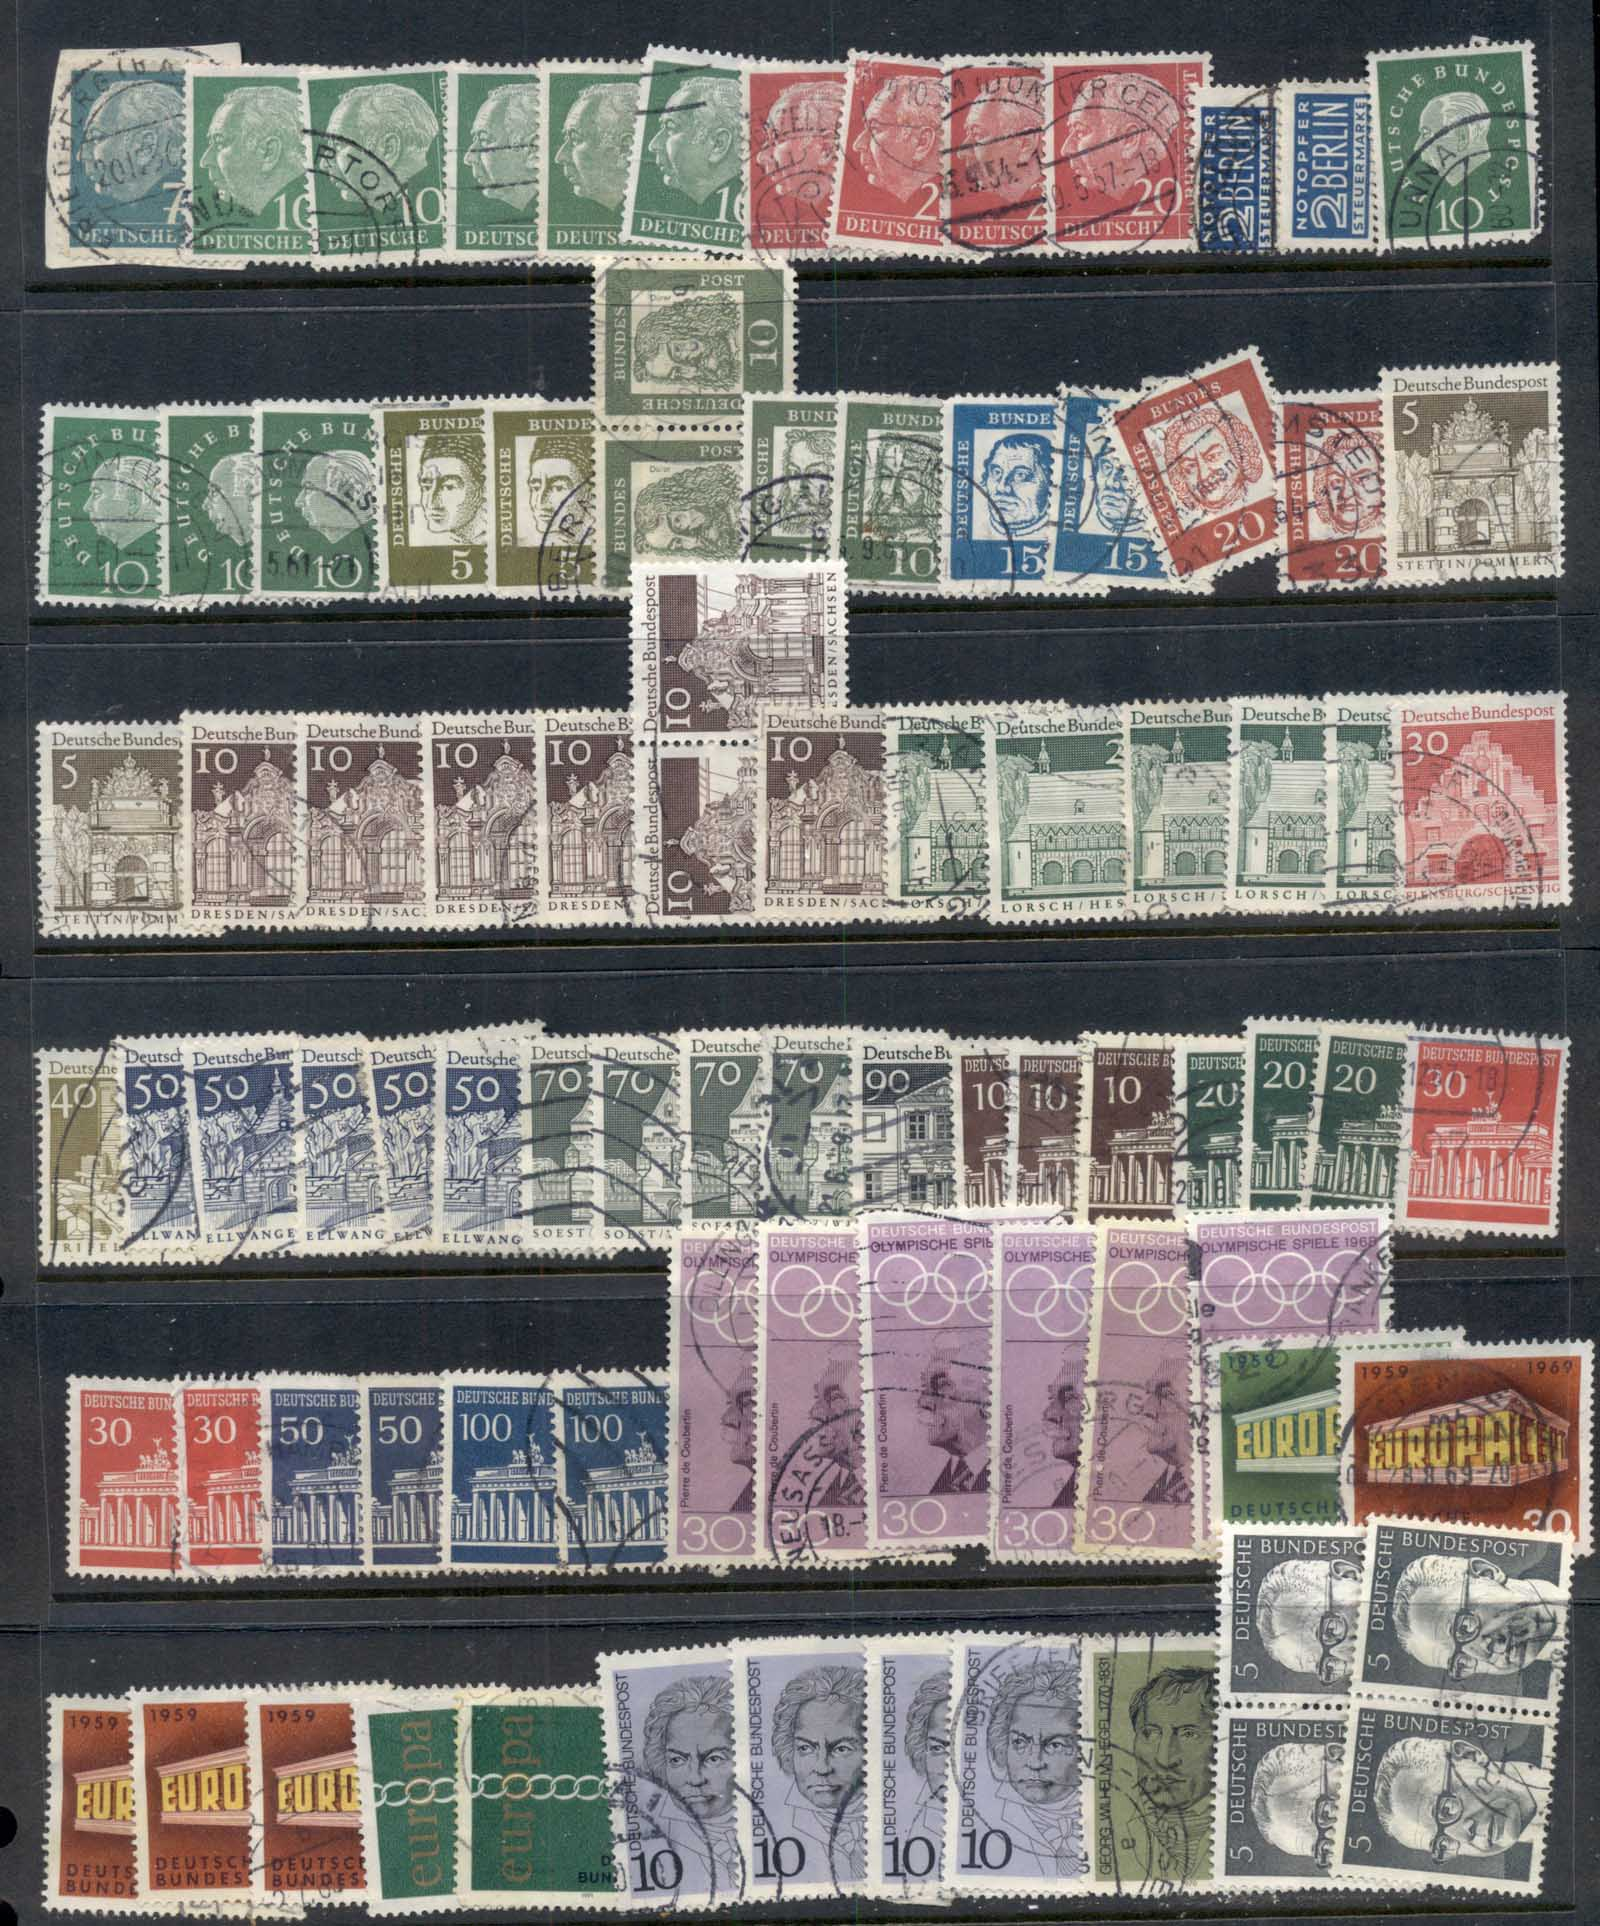 Germany 195-'s on Assorted oddments inc. duplicates, multiples & blocks. Some Berlin